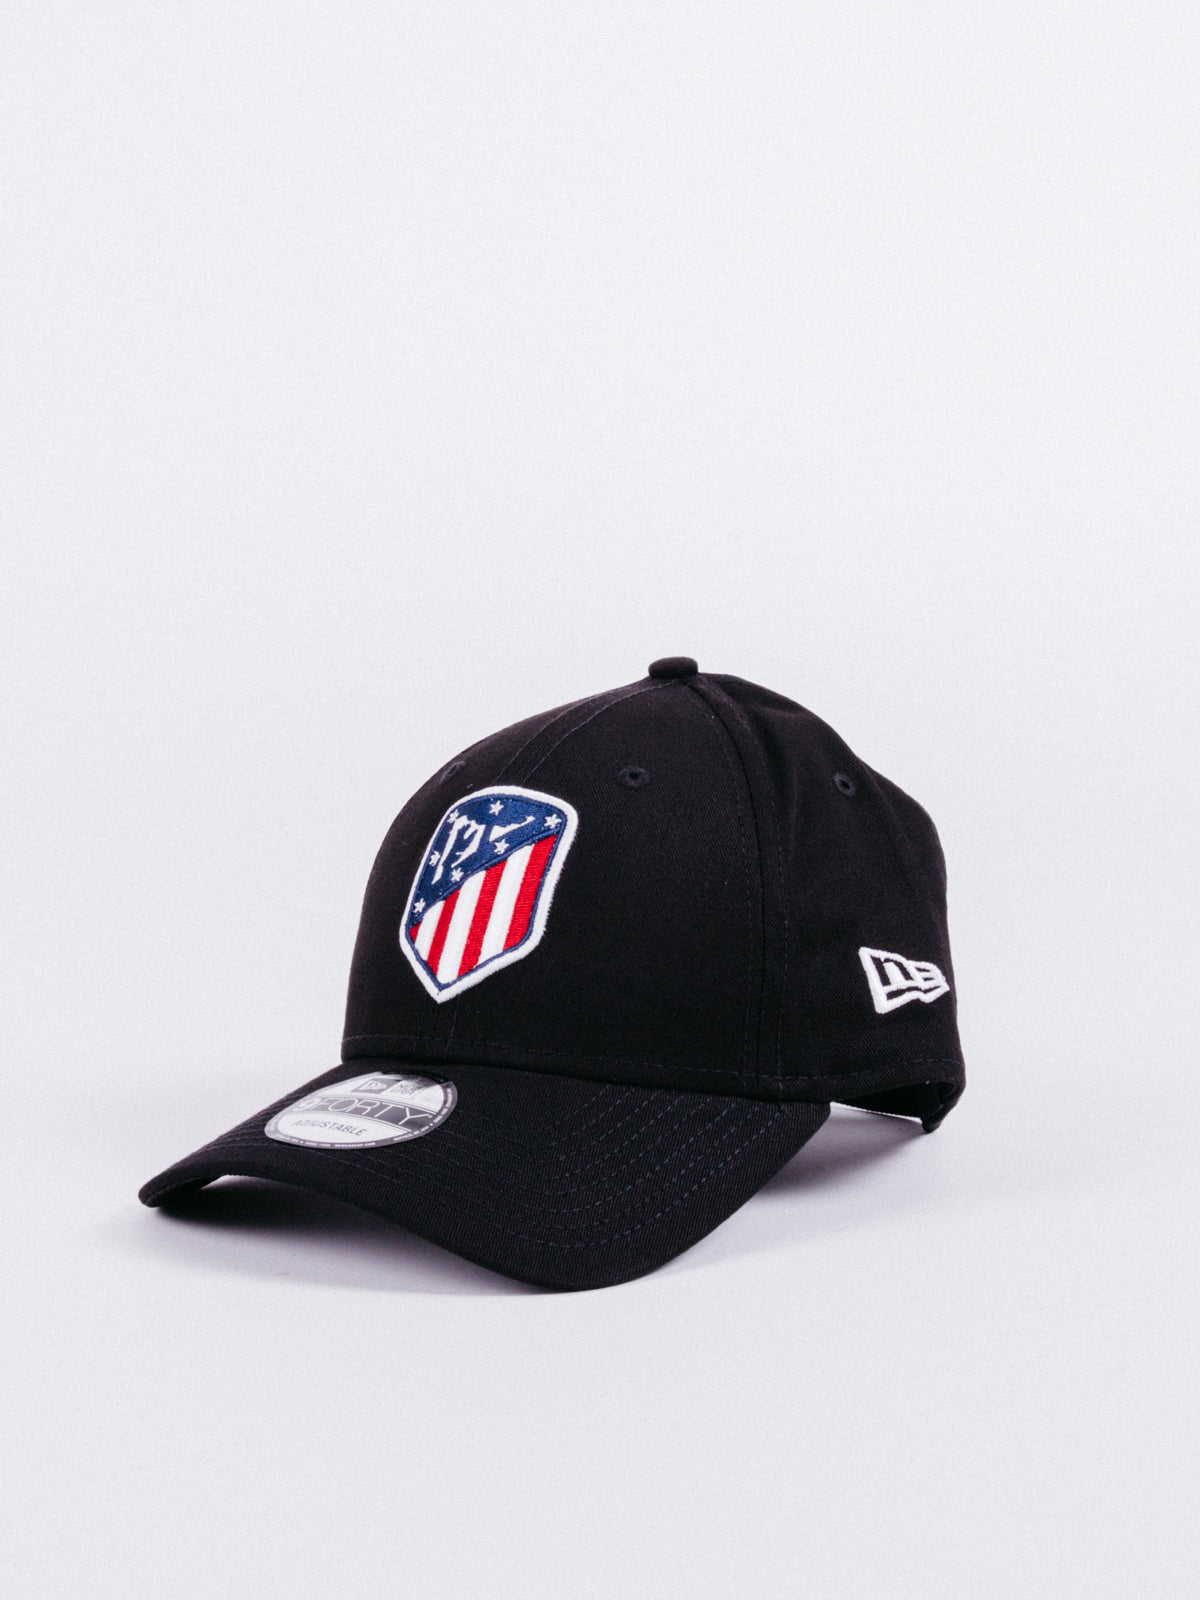 gorra NEW ERA x Atlético de Madrid 9Forty Dad Hat Black visera curva fútbol ajustable